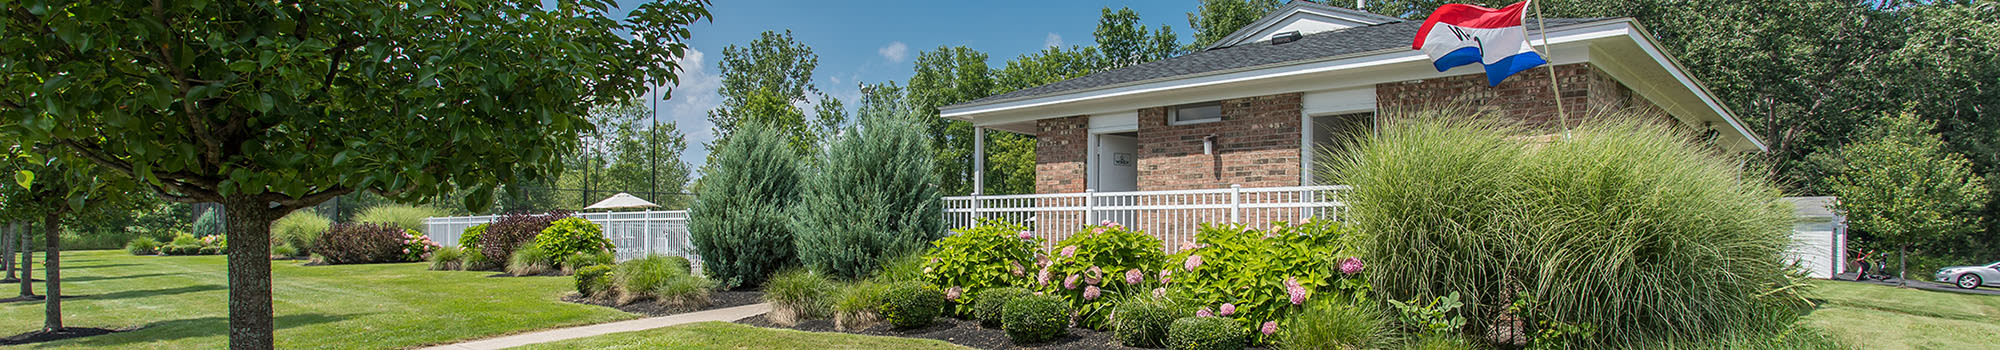 Schedule your Willowbrooke Apartments and Townhomes today